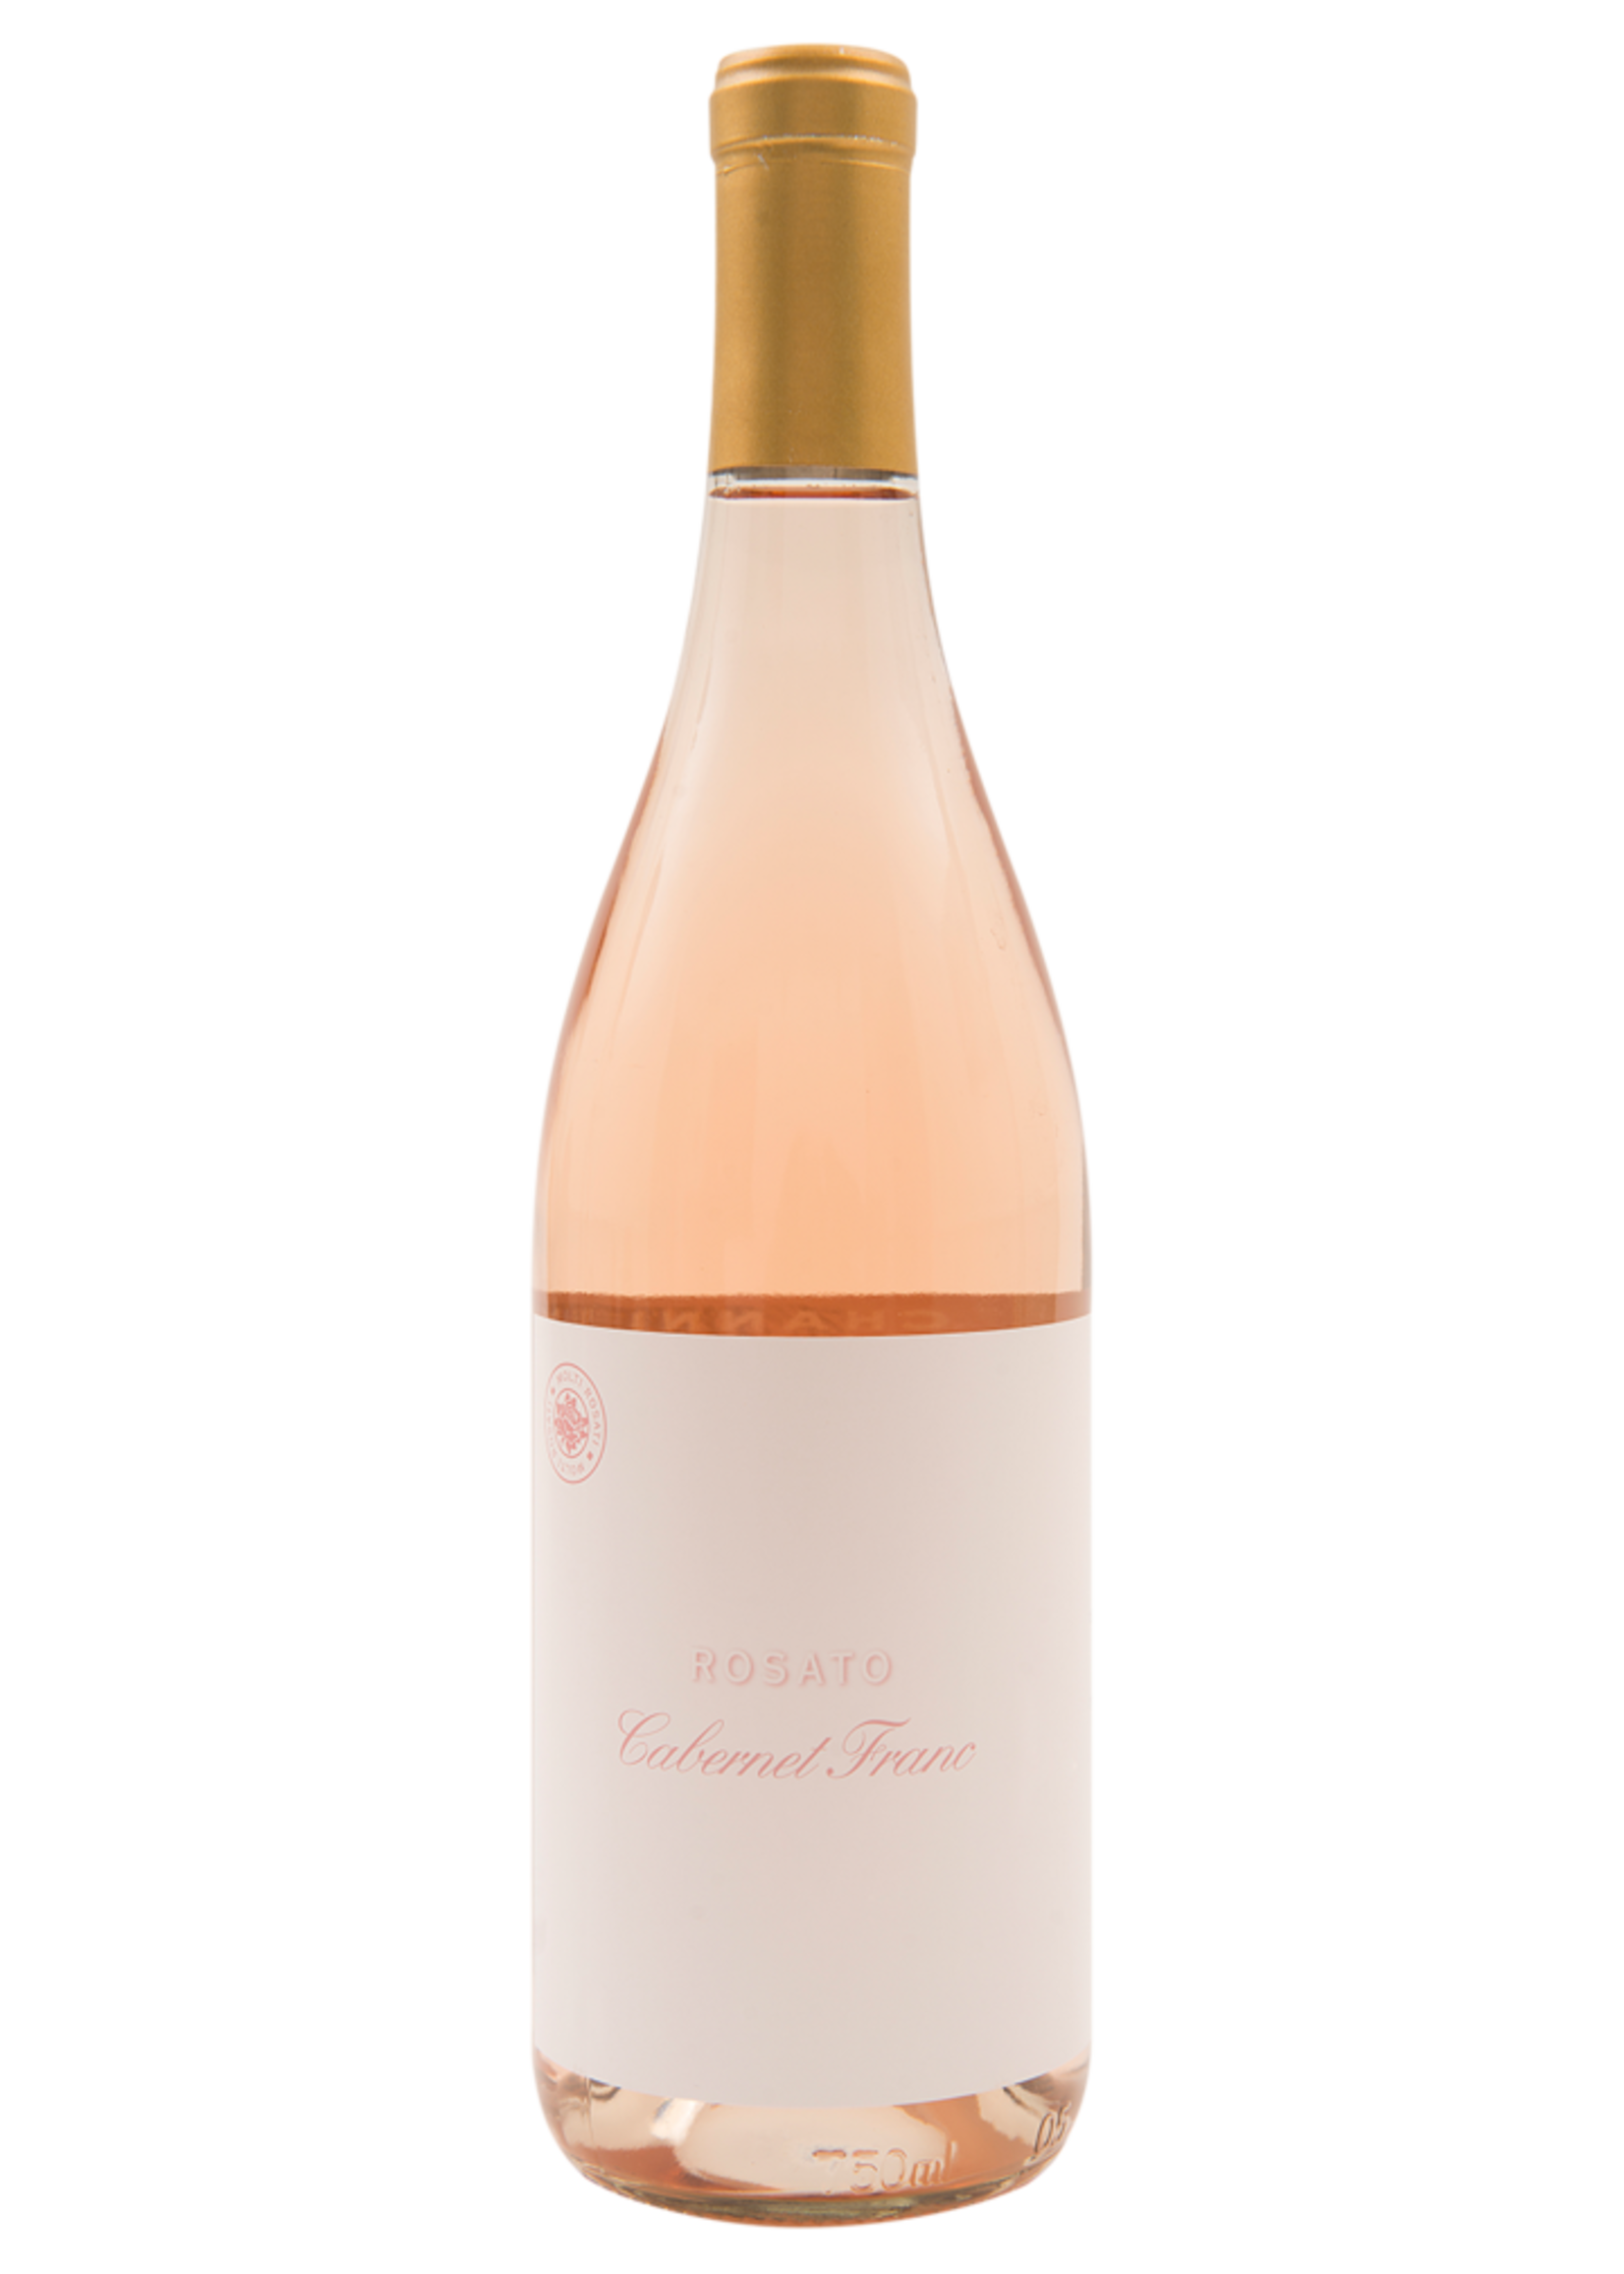 Channing Daughters Winery Channing Daughters / Rosato di Cabernet Franc  2020 / 750mL